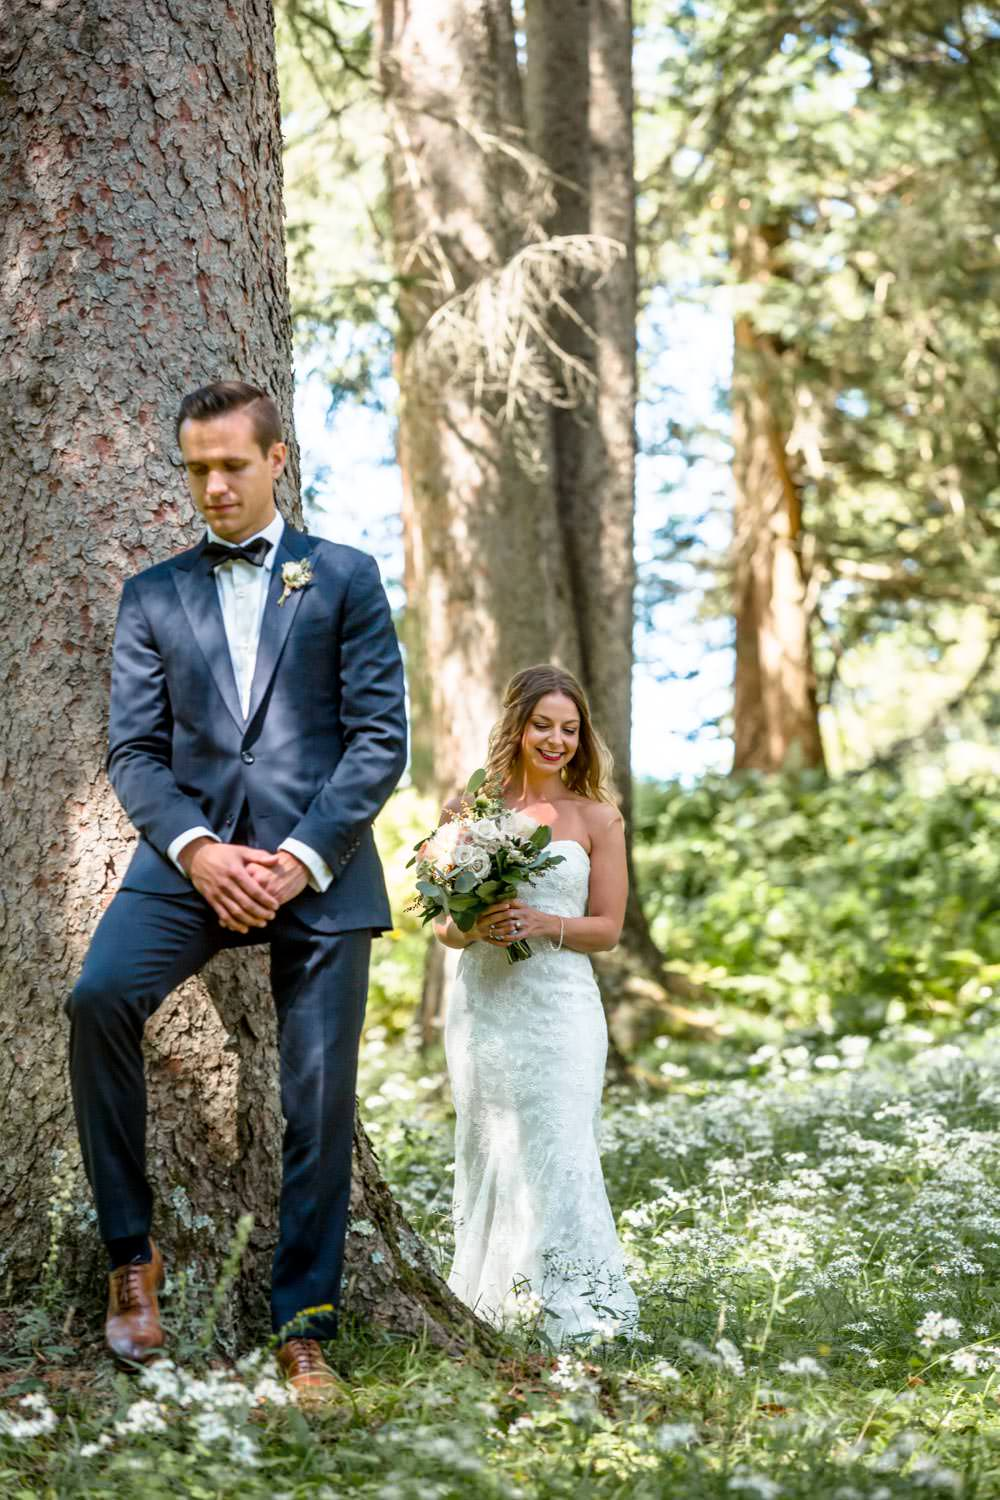 bride approaches groom who stands behind tree for first look photograph before their wedding